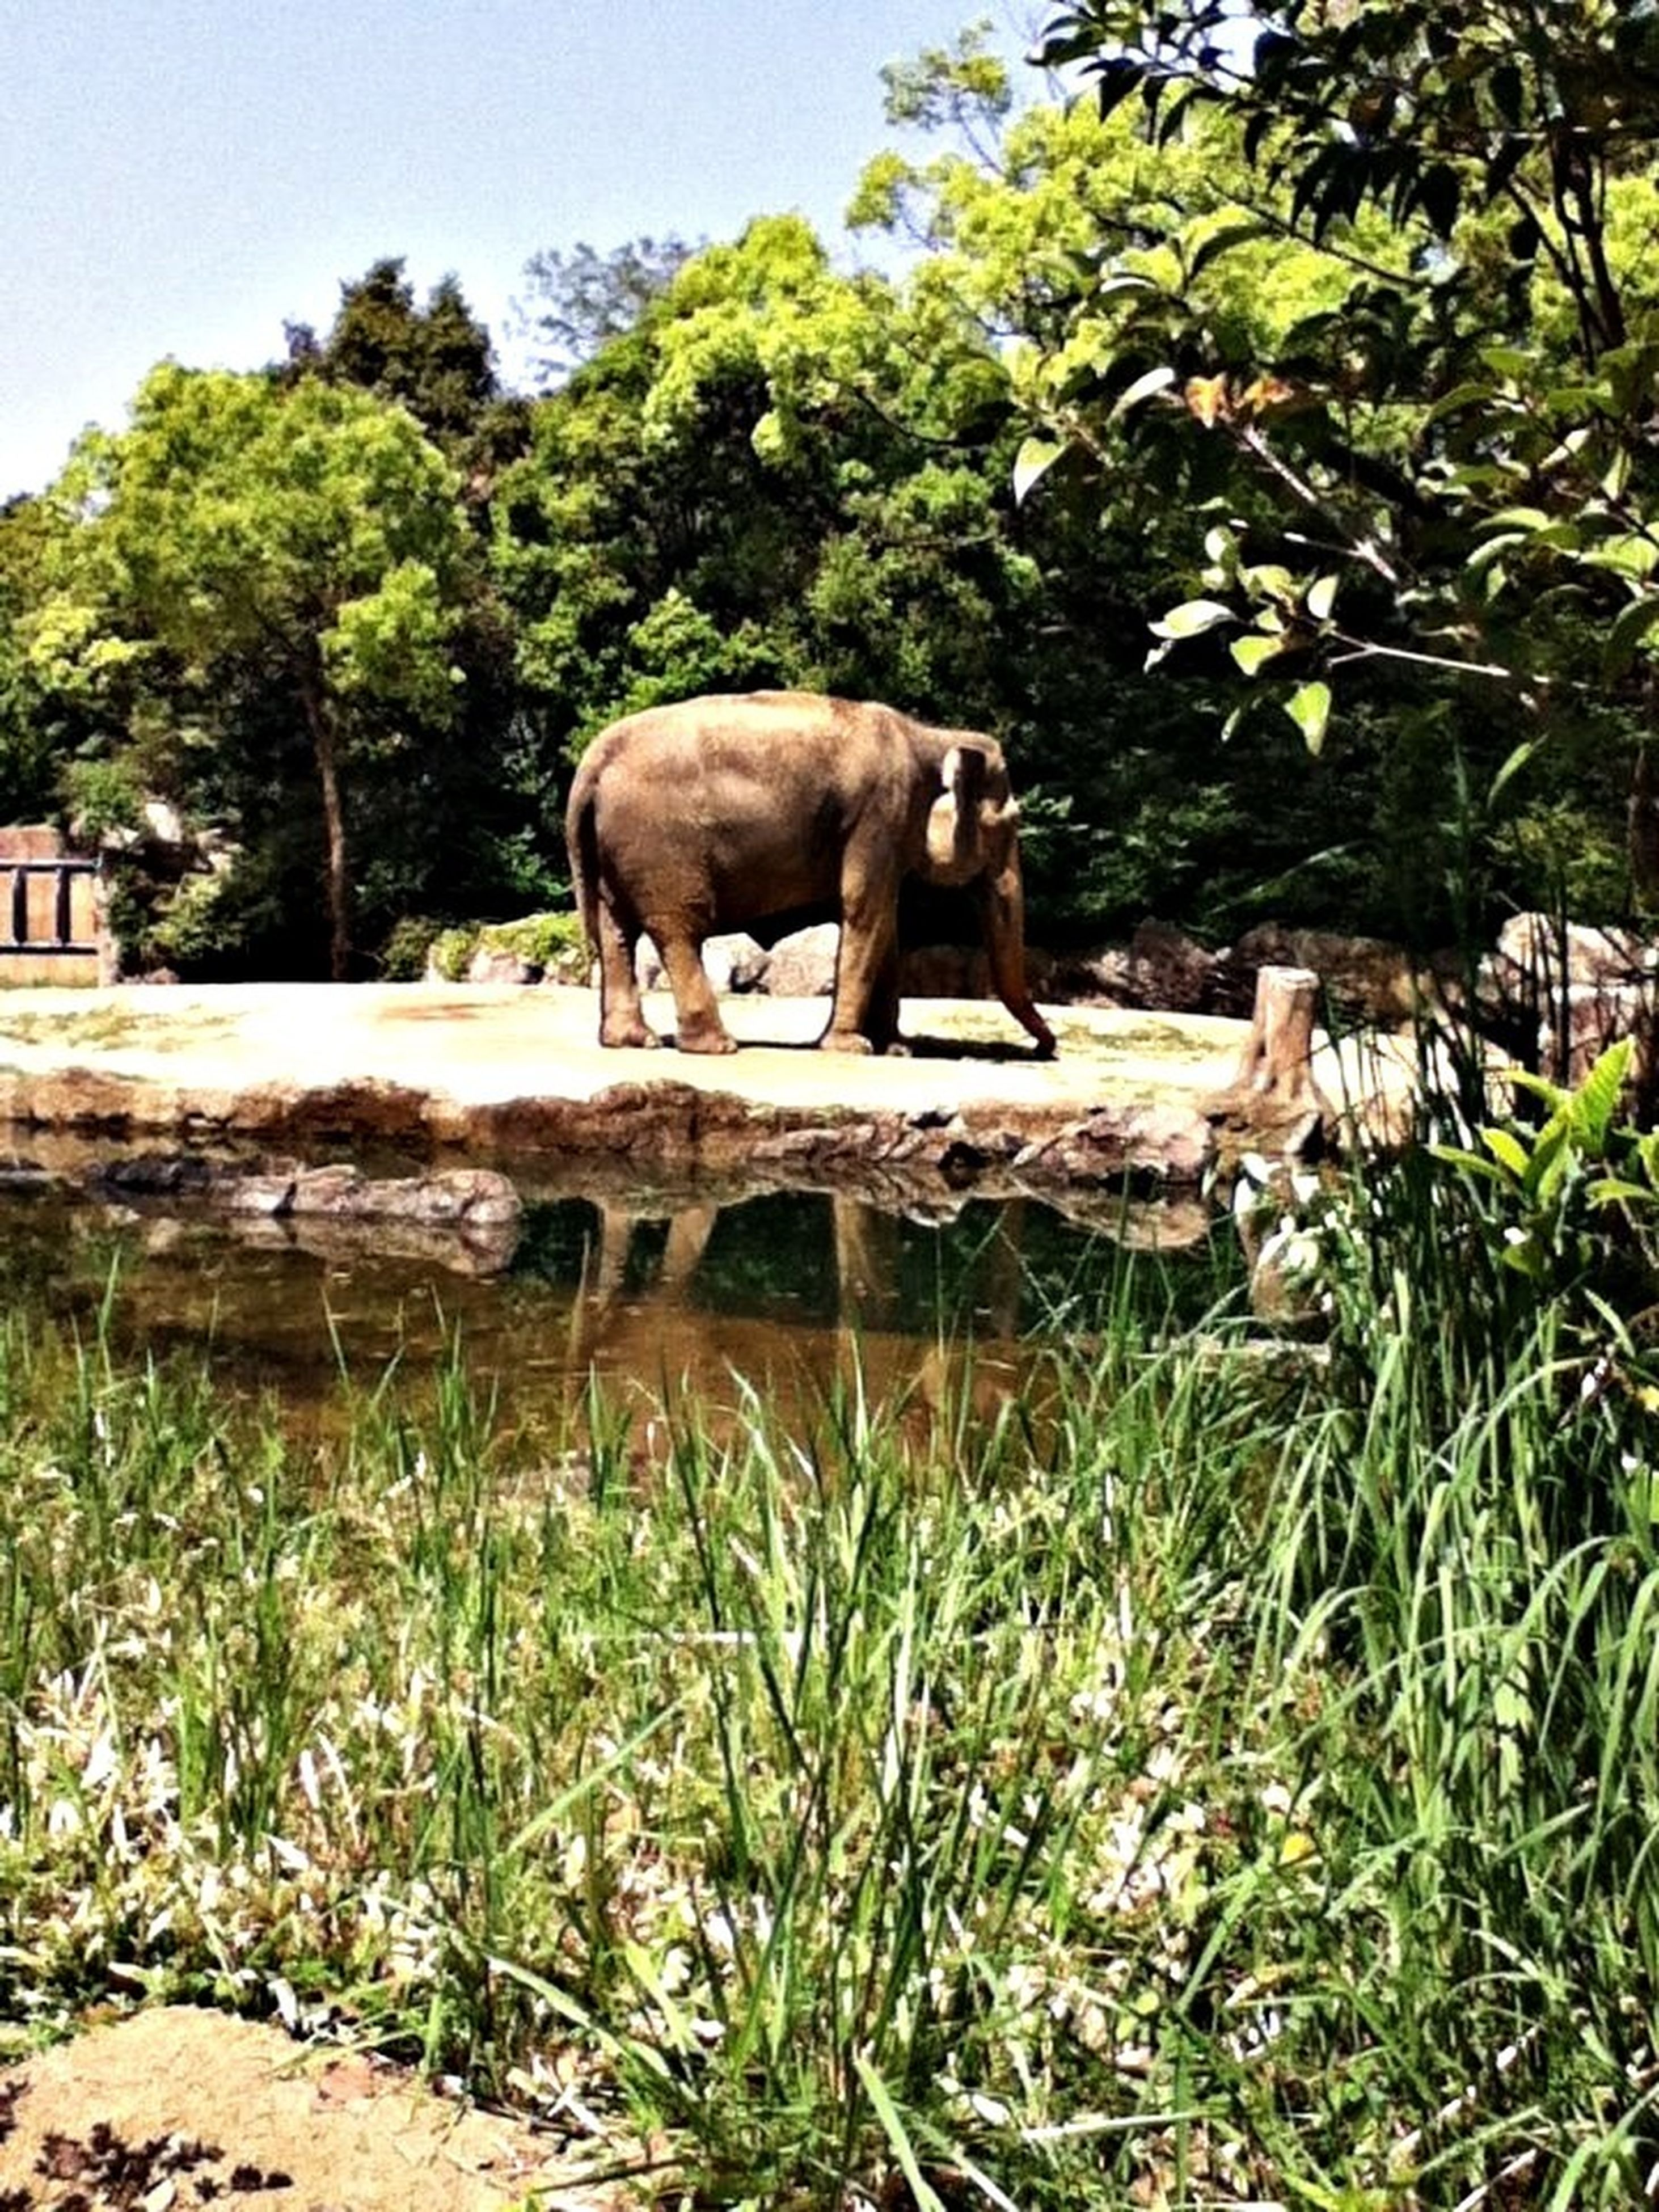 animal themes, mammal, tree, grass, animals in the wild, domestic animals, livestock, field, wildlife, one animal, standing, herbivorous, grazing, full length, nature, side view, green color, two animals, zoology, elephant